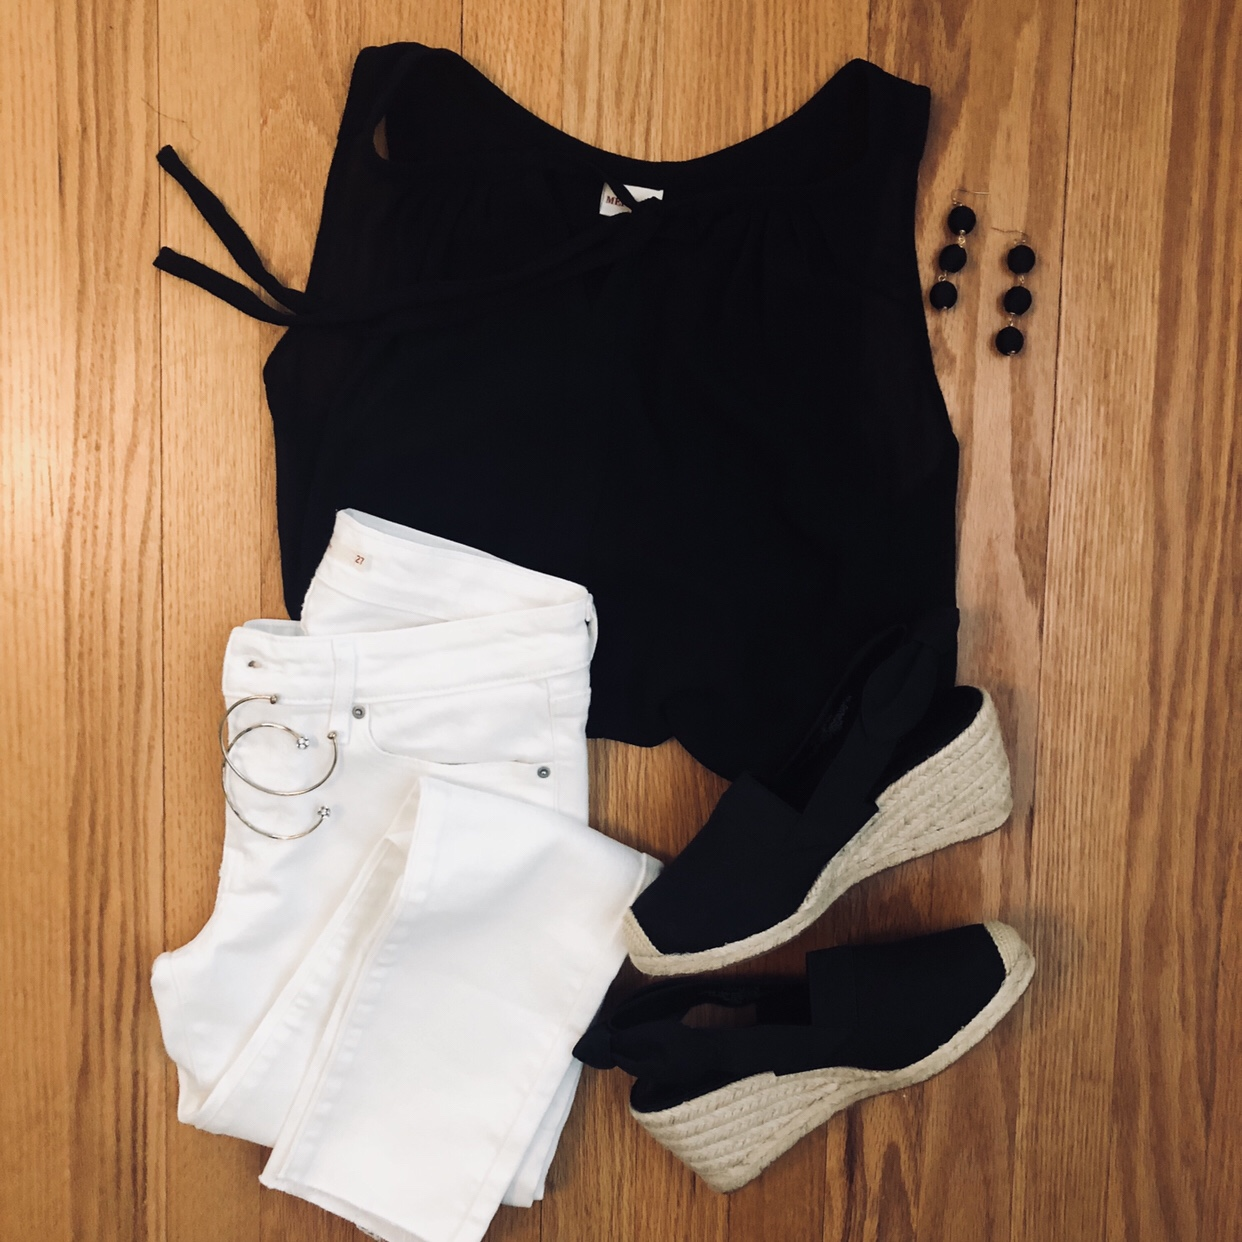 What to wear with white jeans - black sleeveless top and espadrilles